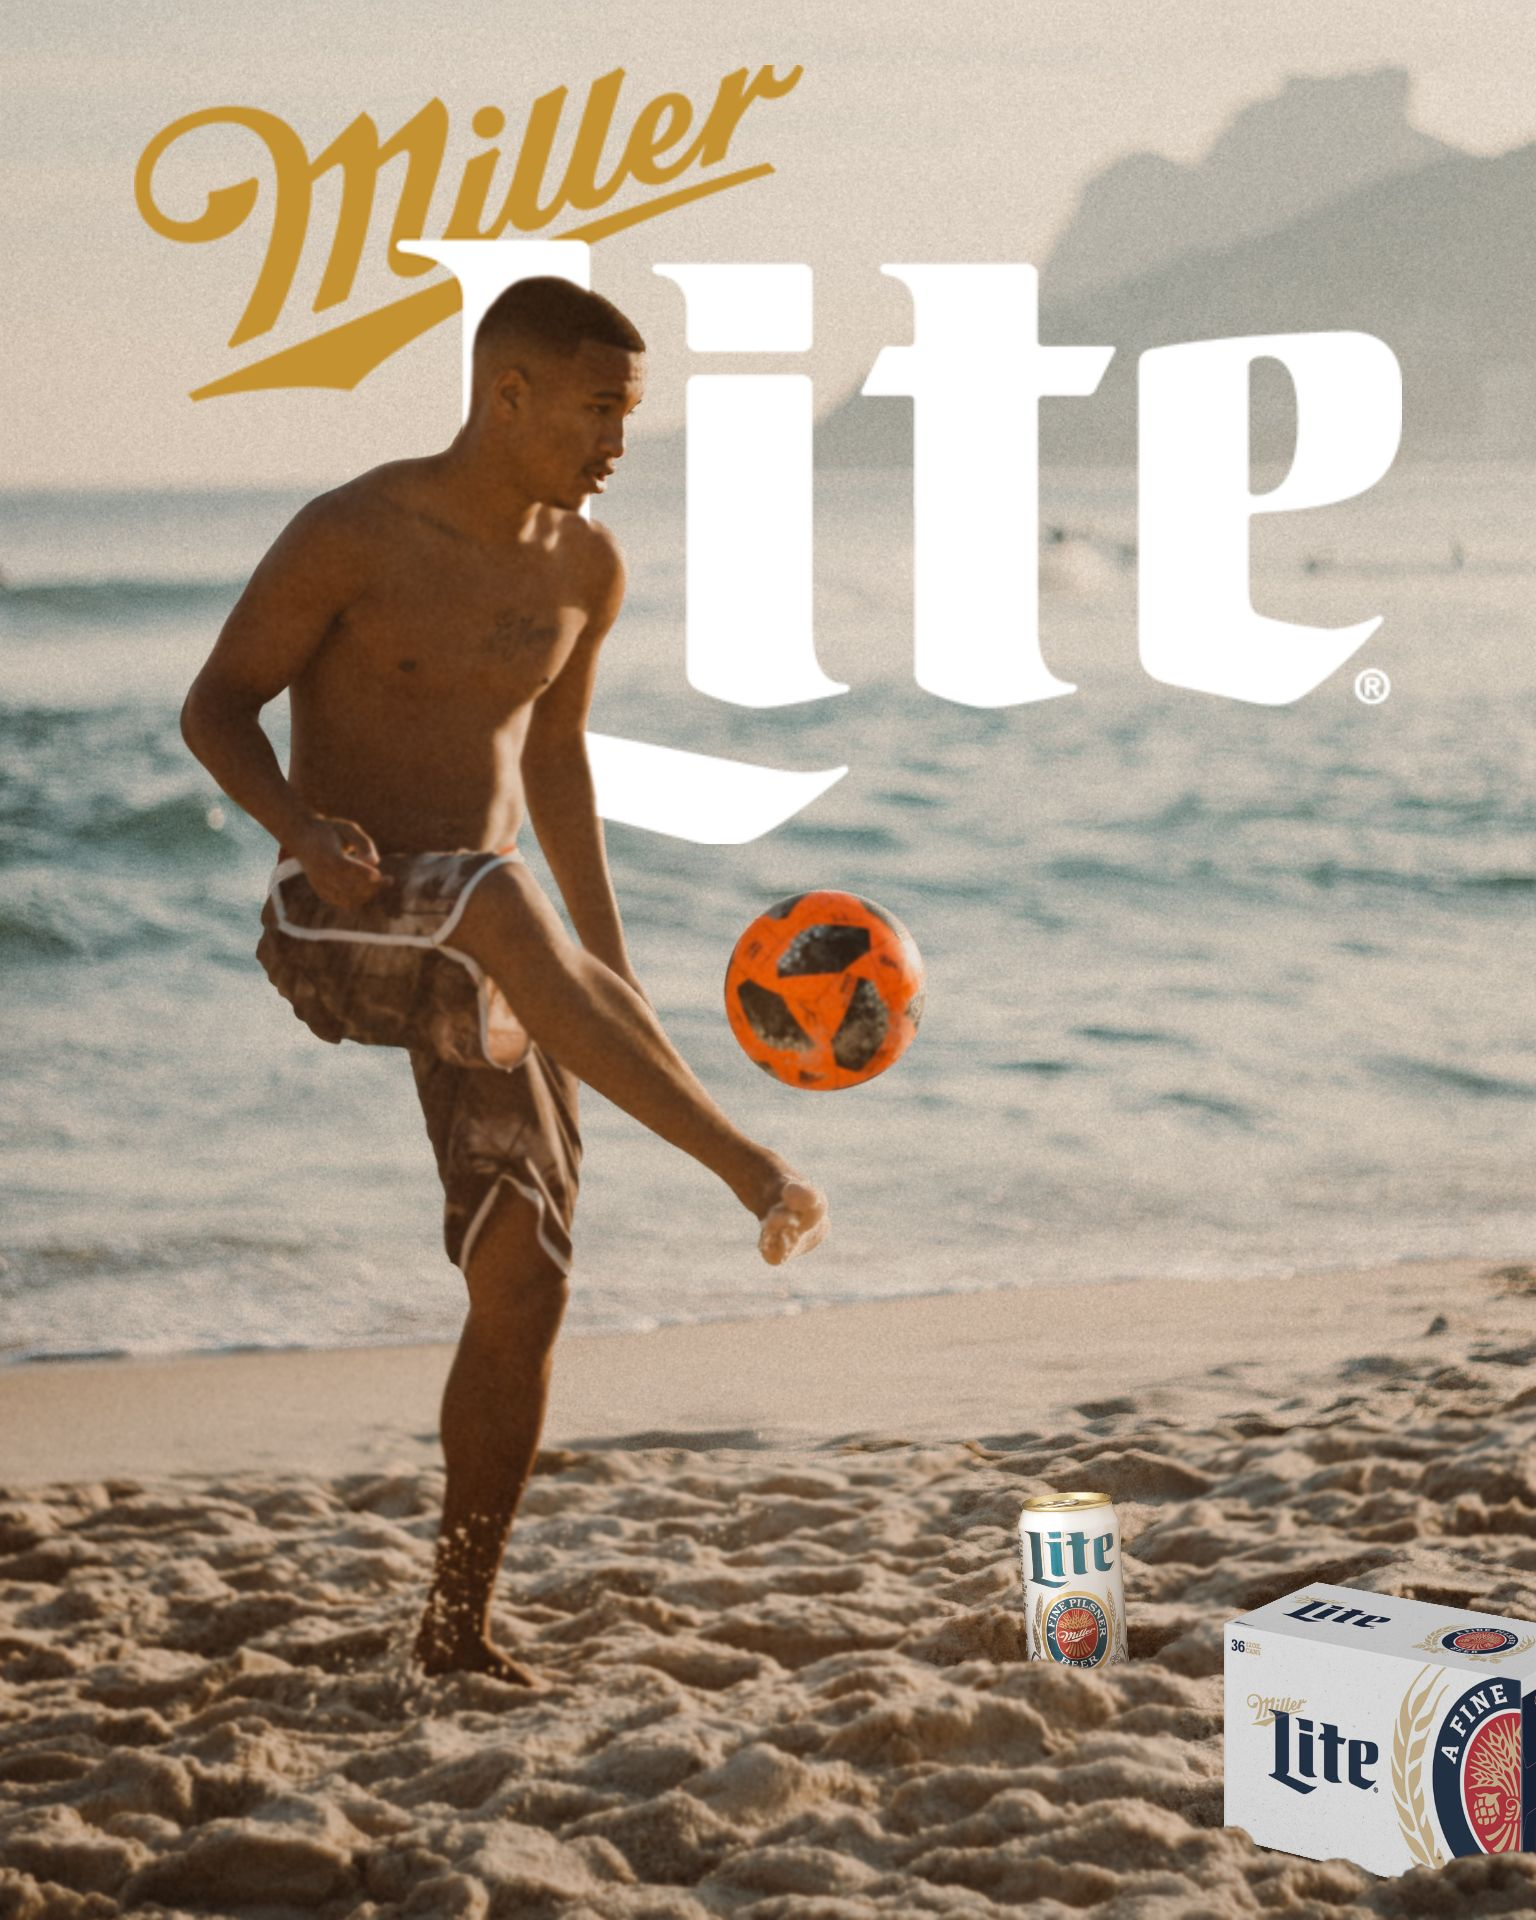 An example of the TikTok Beer Poster trend using the Miller Lite brand.